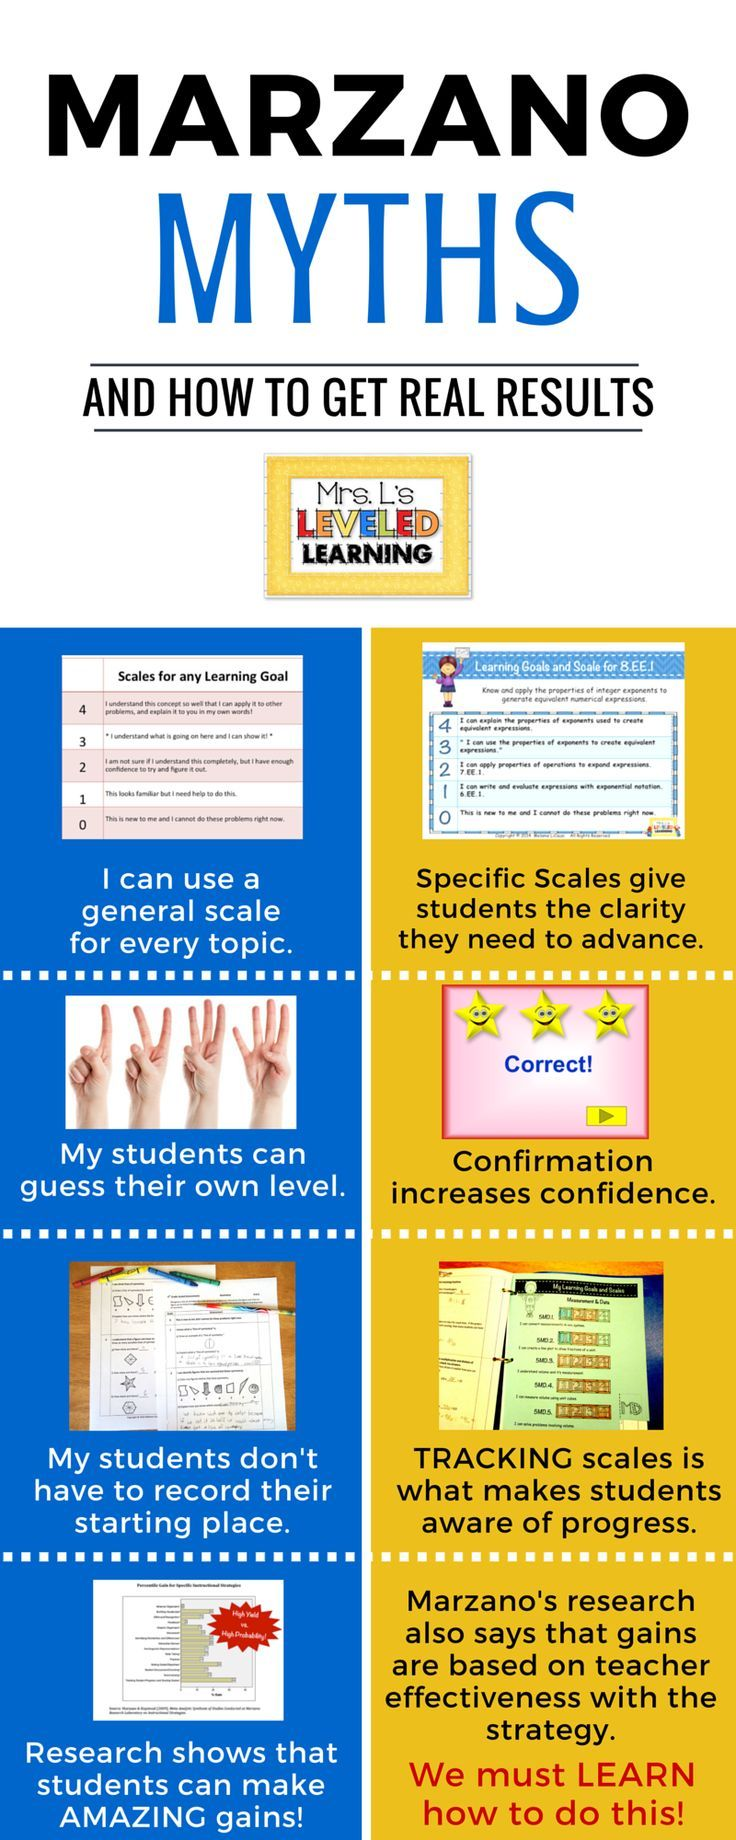 Marzano Myths: 5 Reasons Marzano Scales Aren't Working for You - Mrs. L's Leveled Learning: Are you required to use Marzano Scales in your classroom, but don't see them working? Here's a few mistakes I made and what I learned from them.